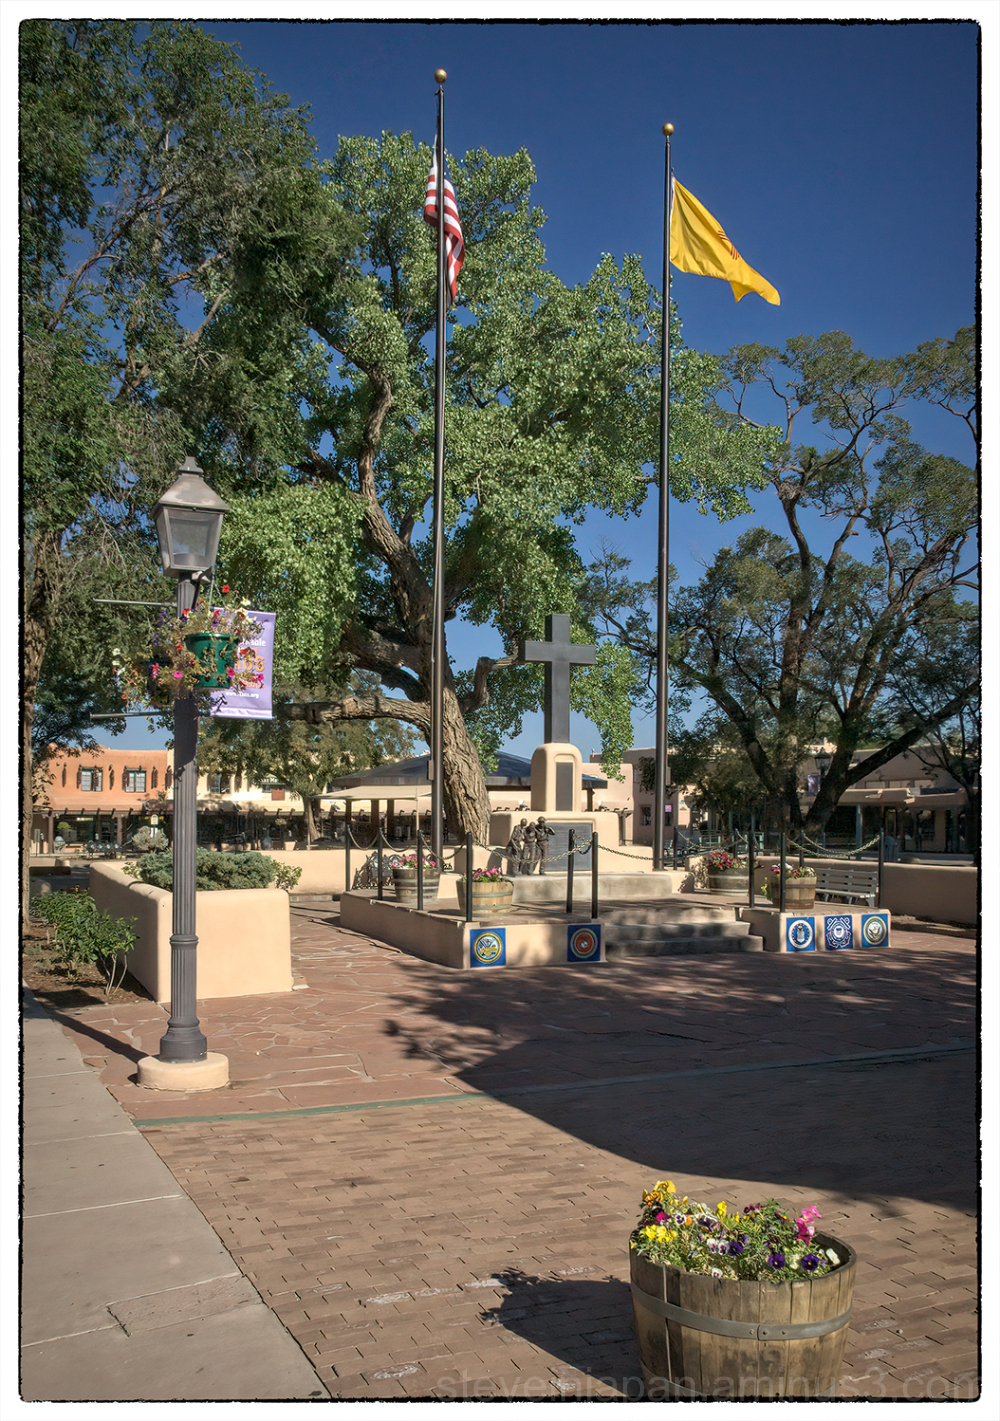 A memorial on the square in Taos, NM.